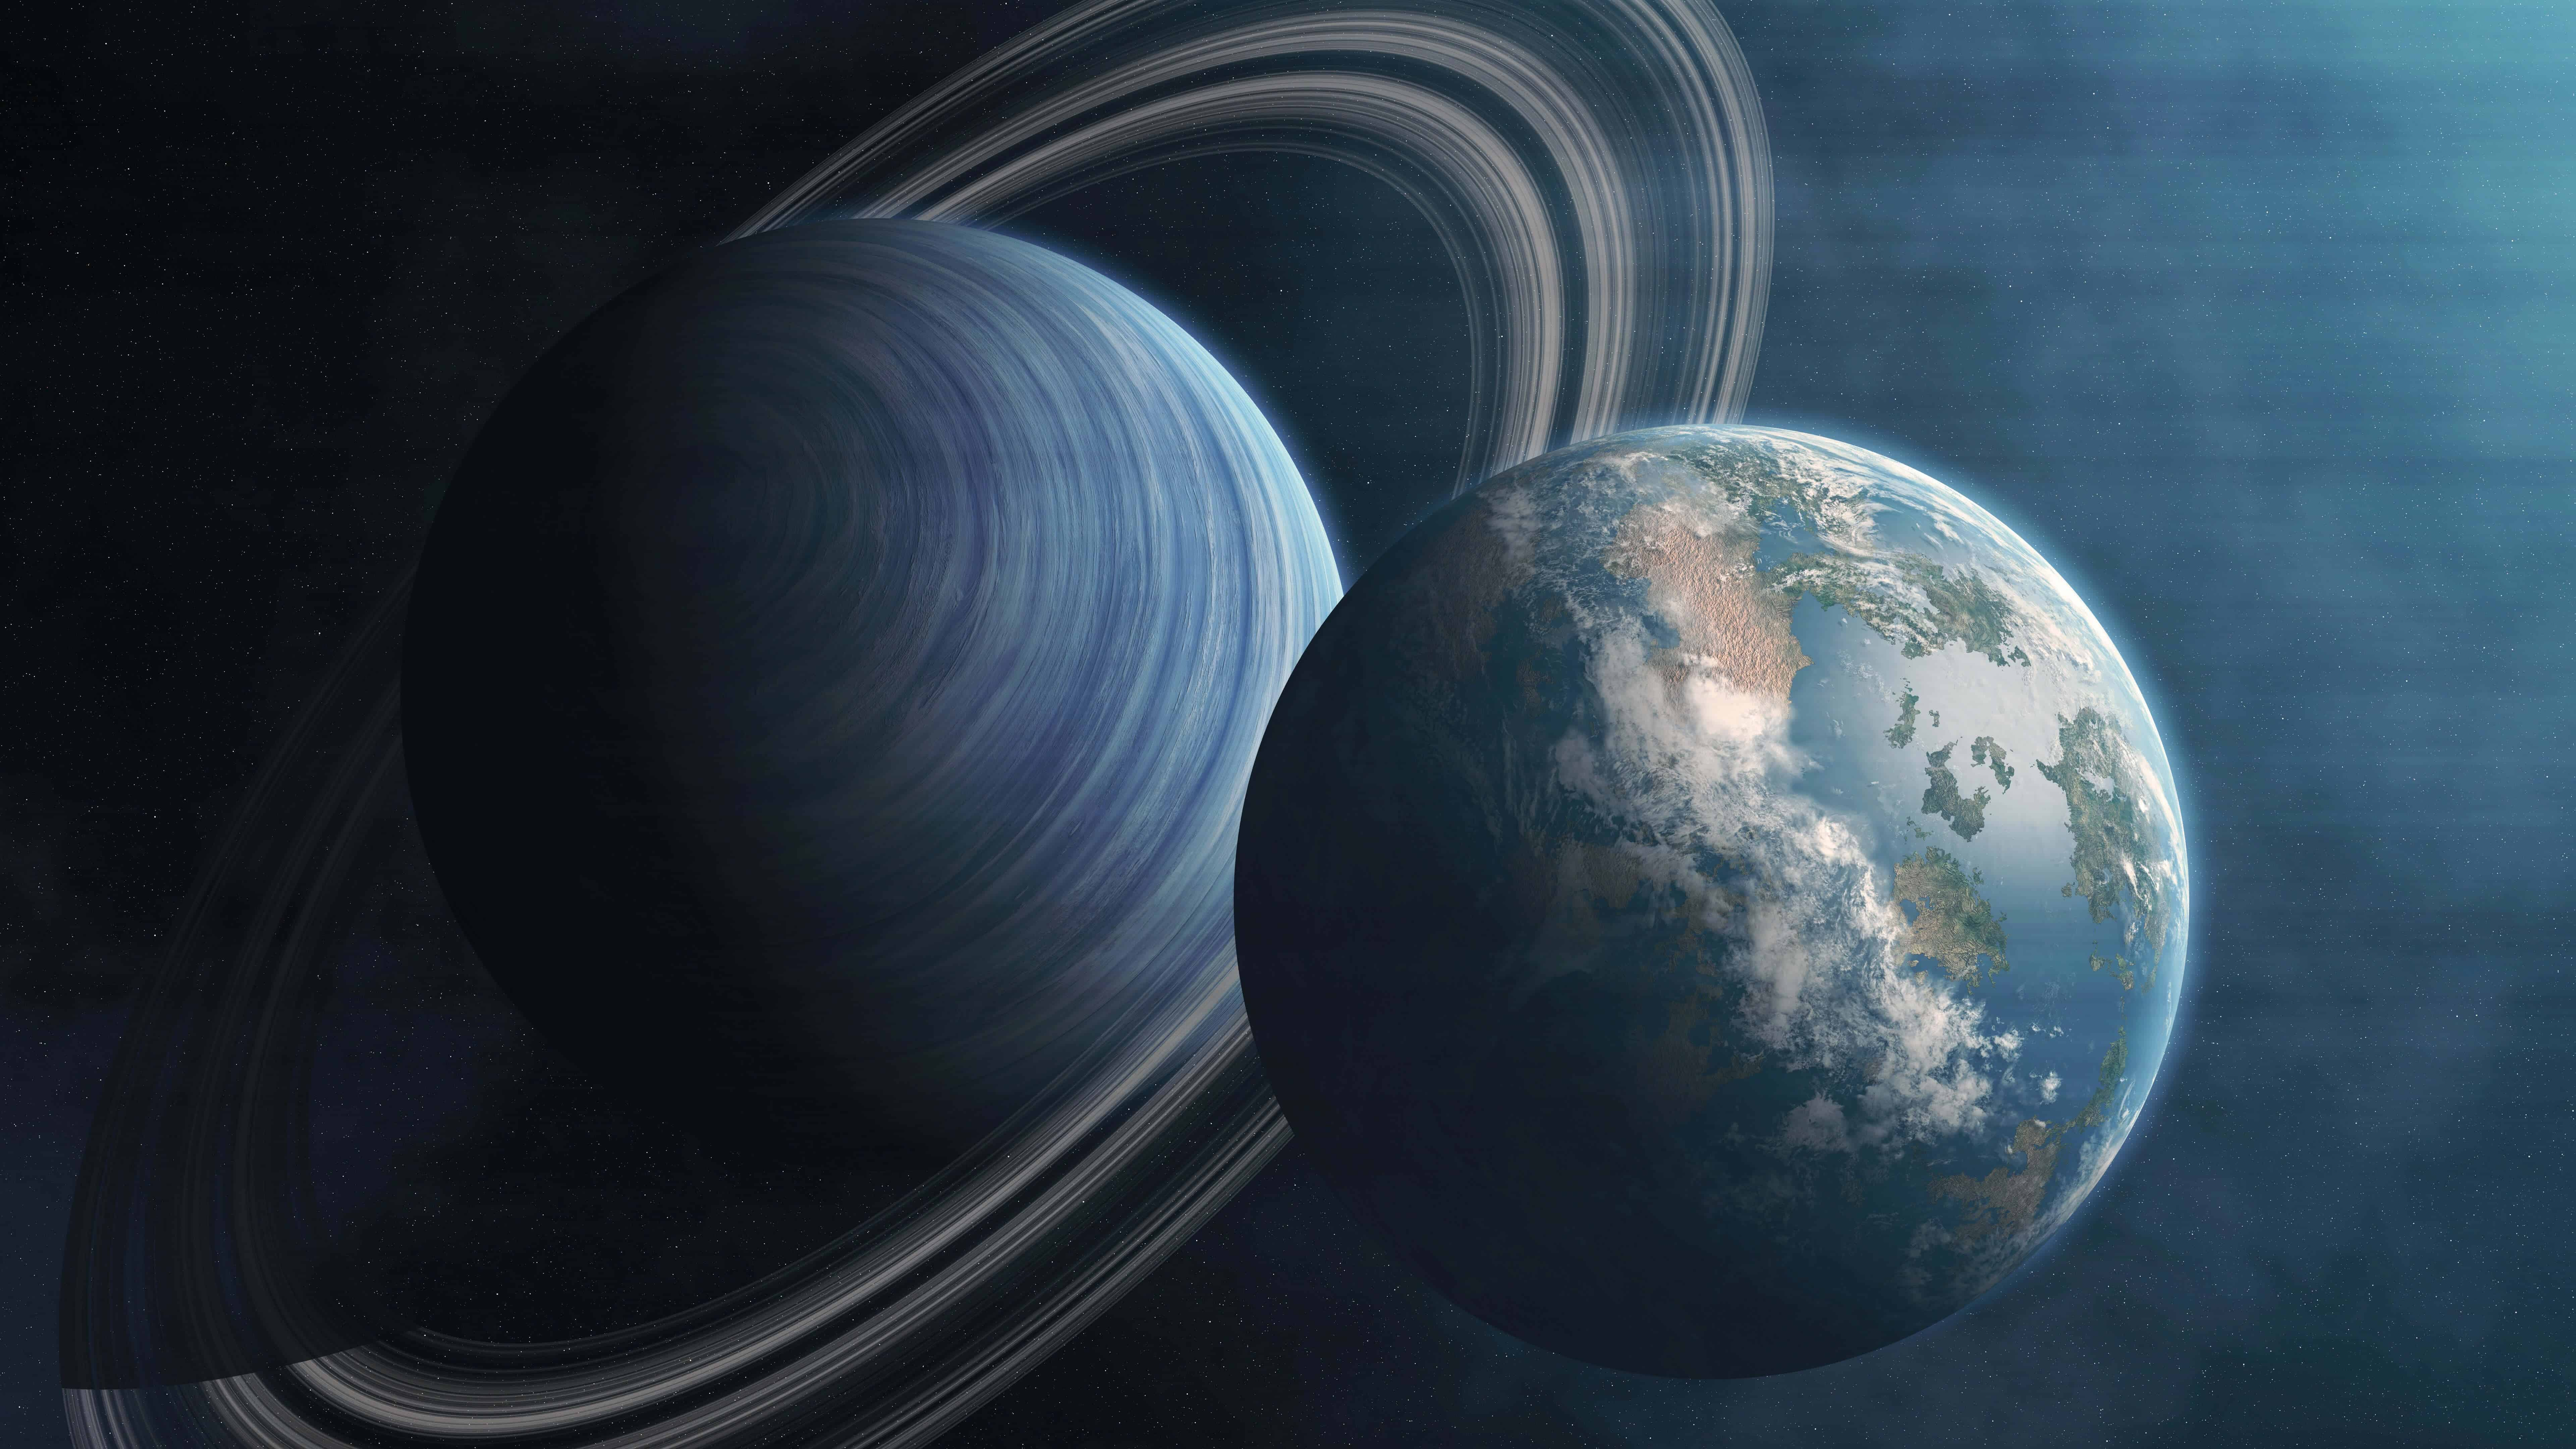 planet earth and saturn uhd 8k wallpaper